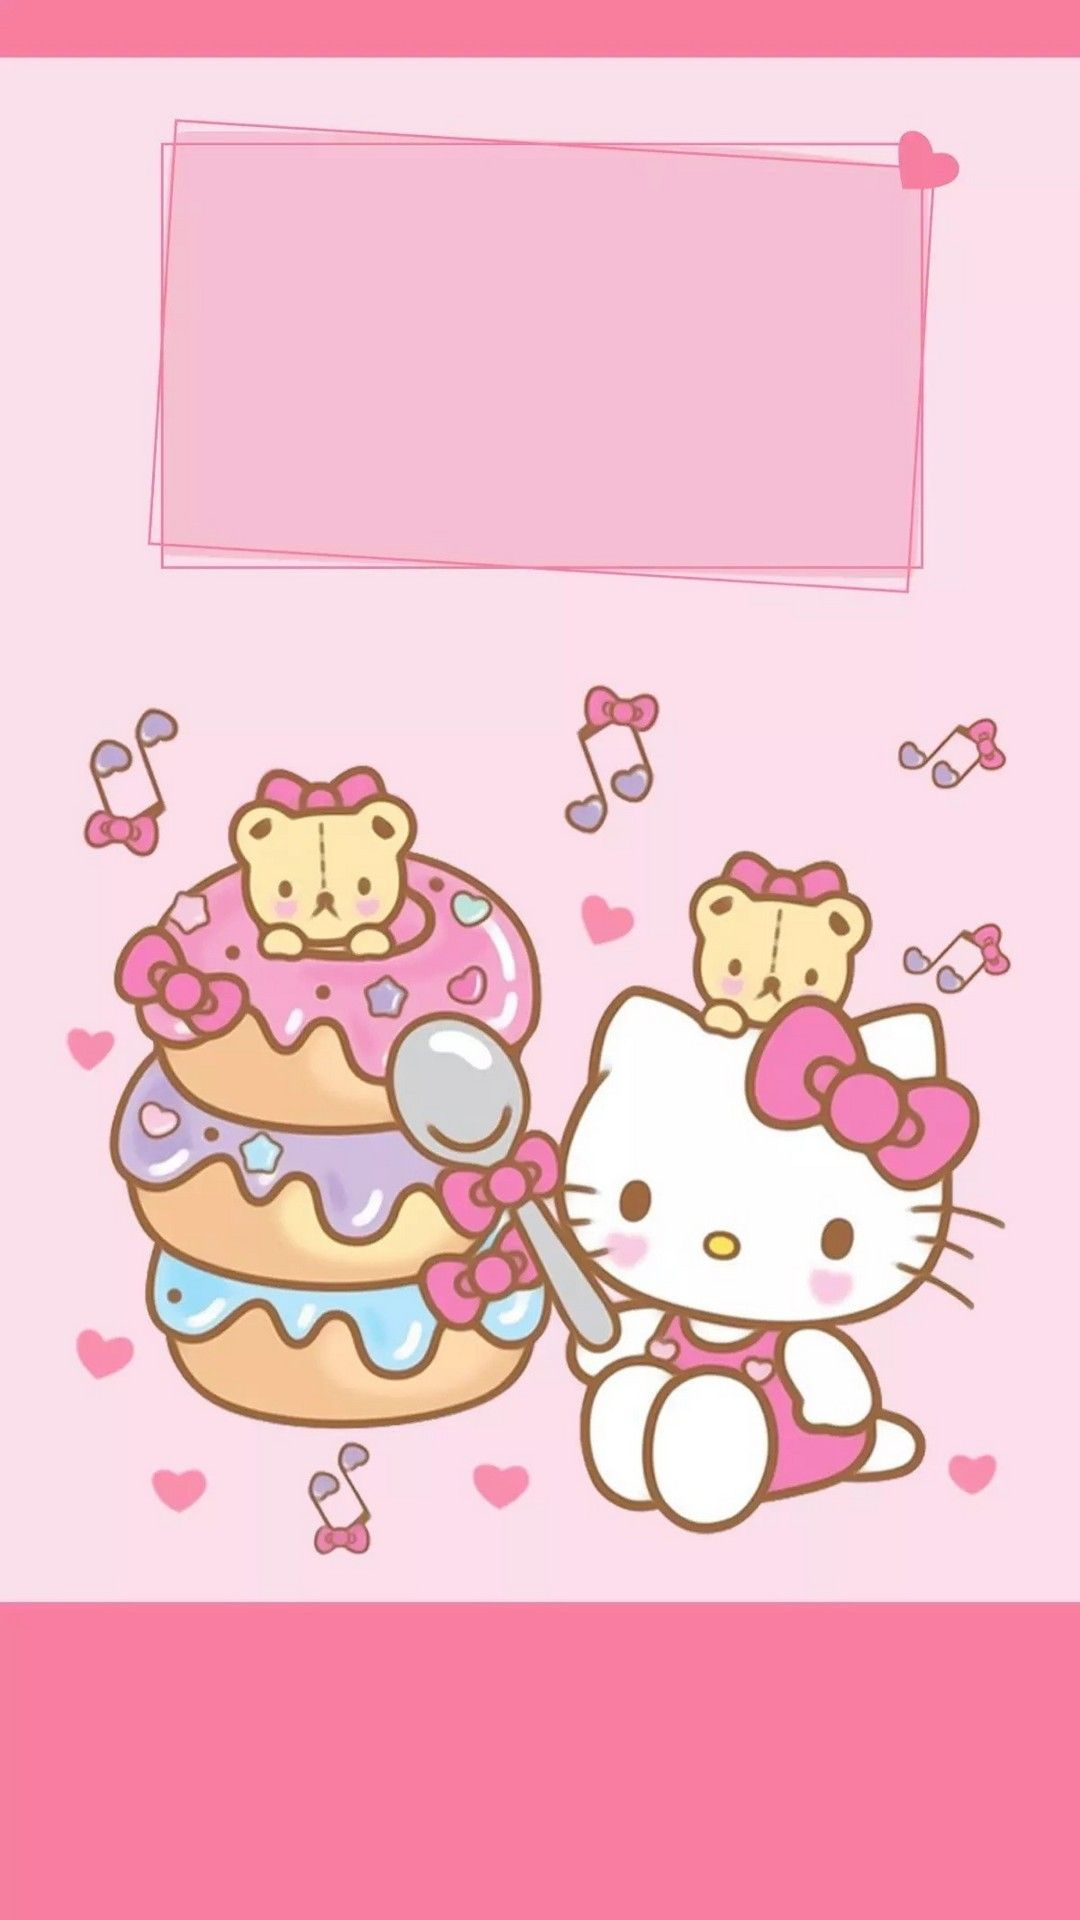 Moving 3d Hello Kitty Screensaver Cute Hello Kitty Cell Phone Wallpapers 240x320 Mobile Phone Hd Hello Kitty Wallpaper Hello Kitty Kitty Wallpaper